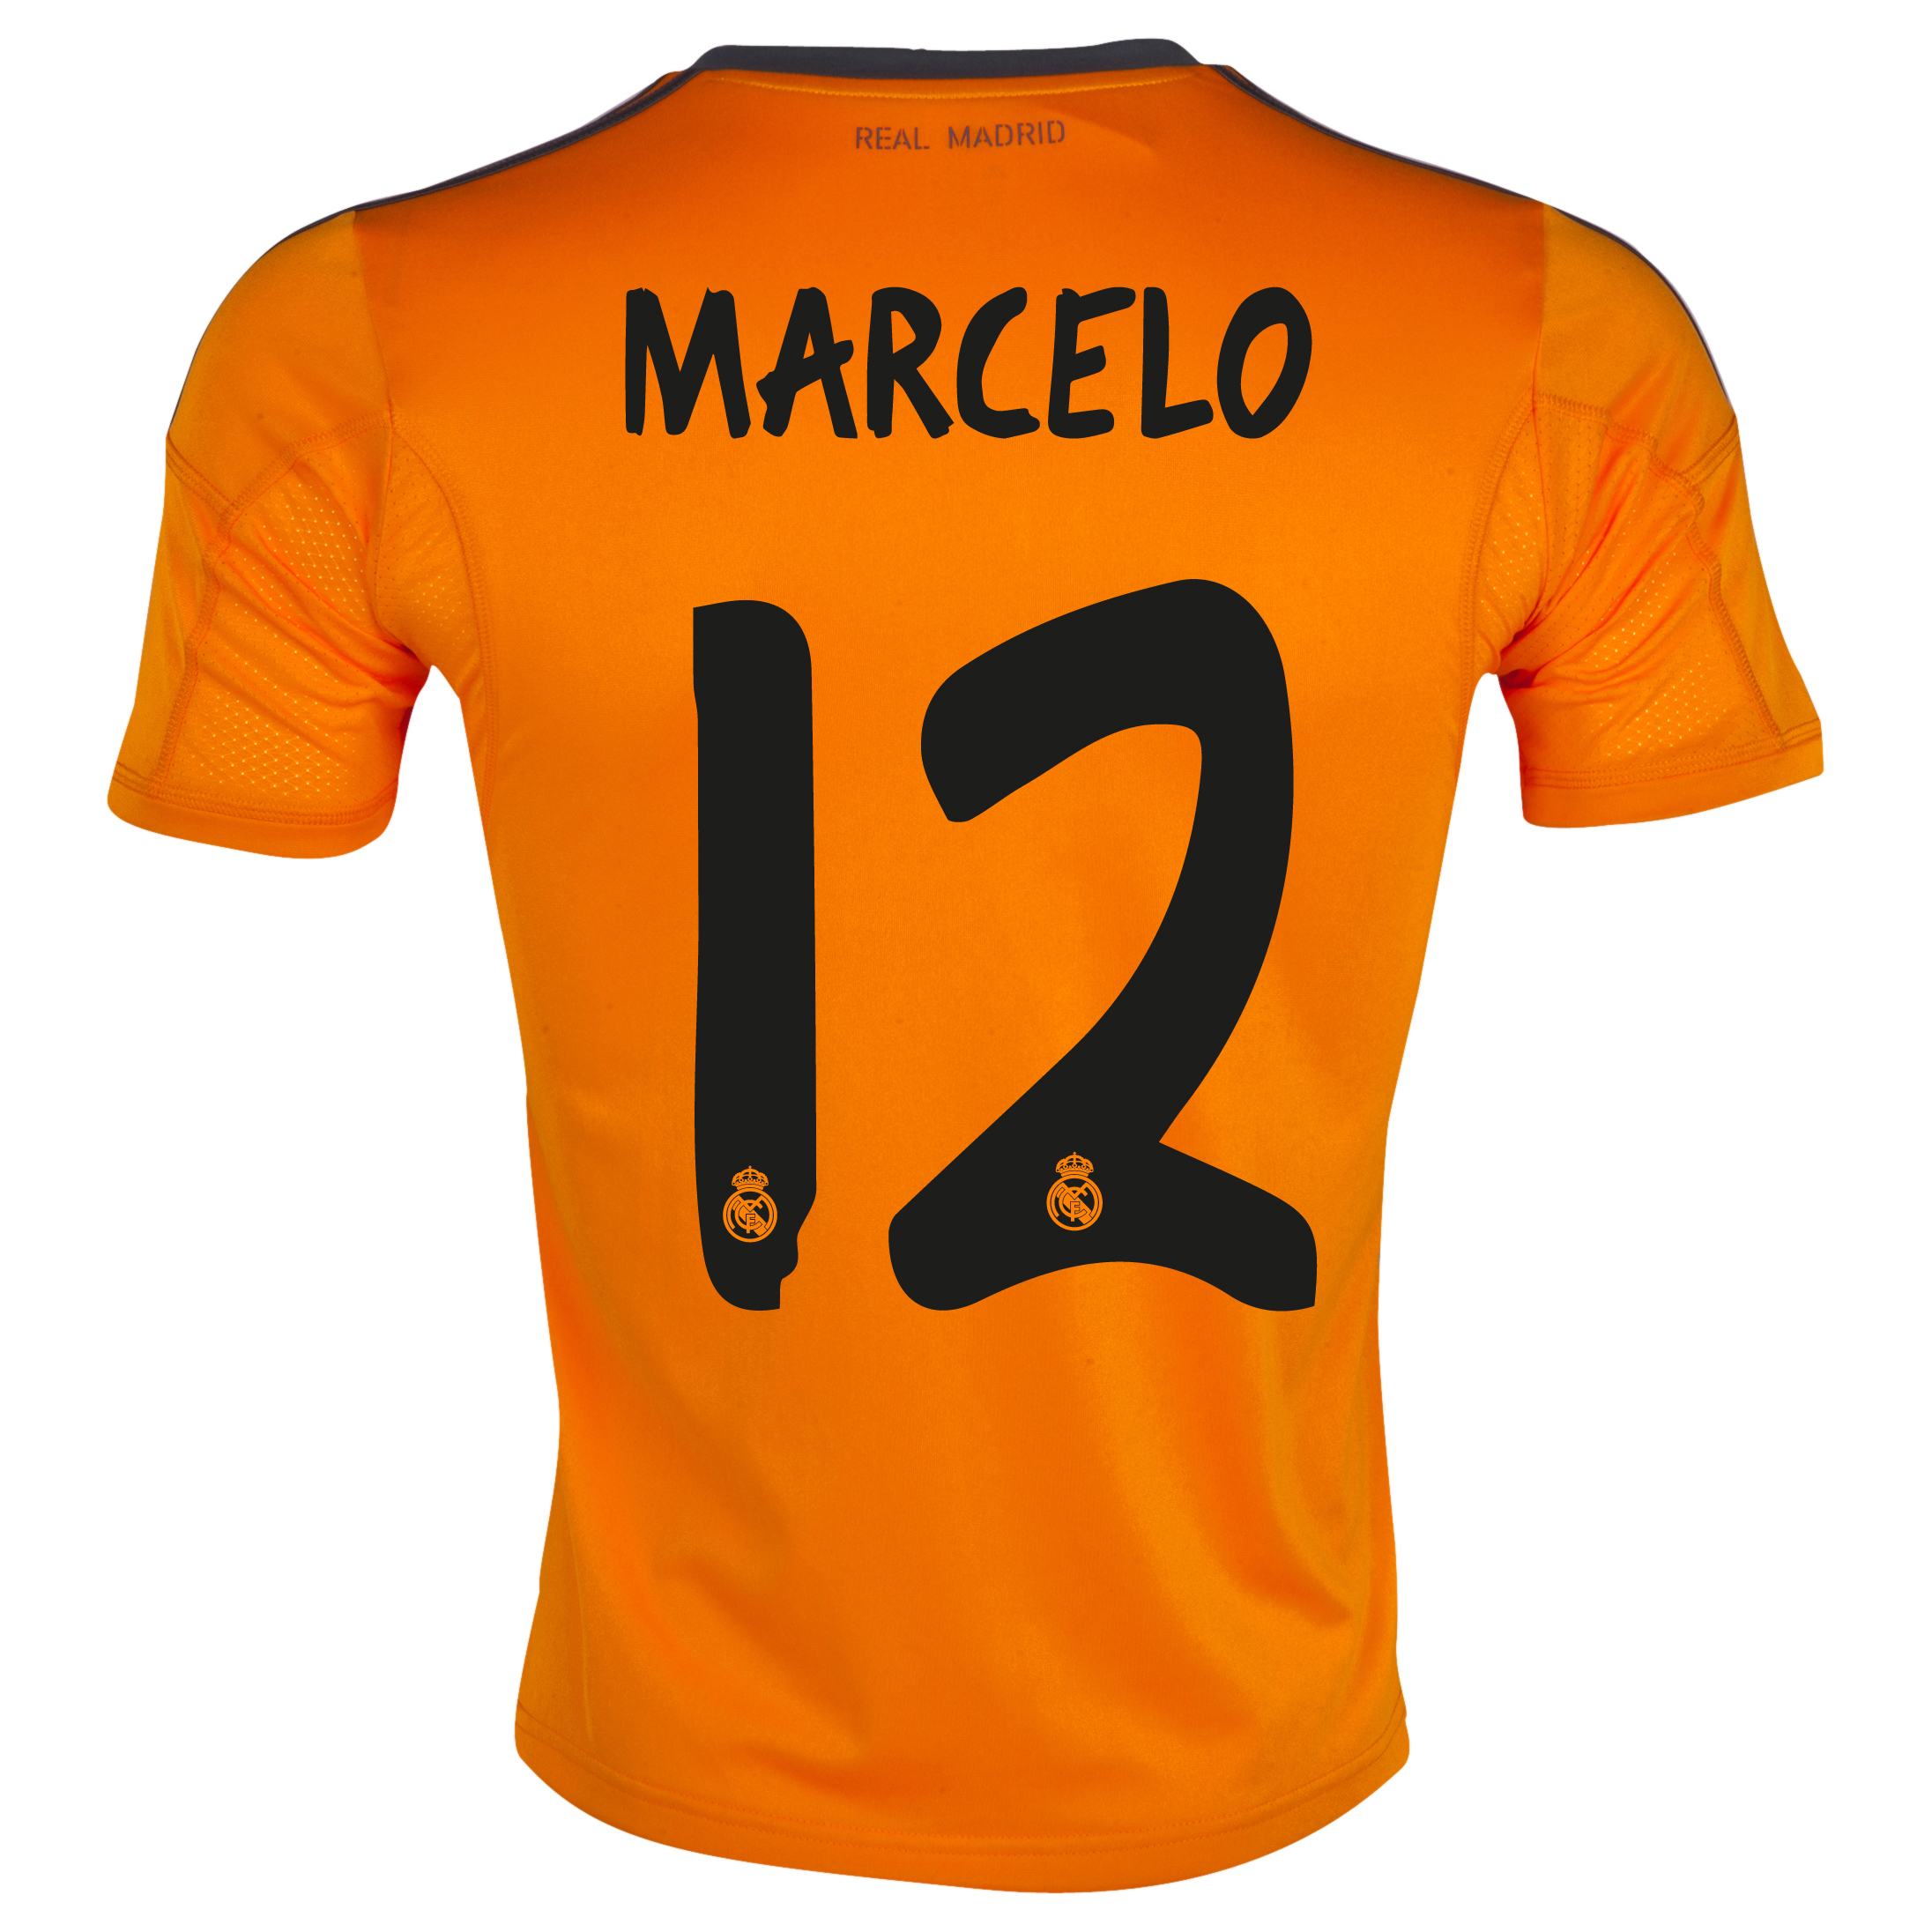 Real Madrid Third Shirt 2013/14 with Marcelo 12 printing